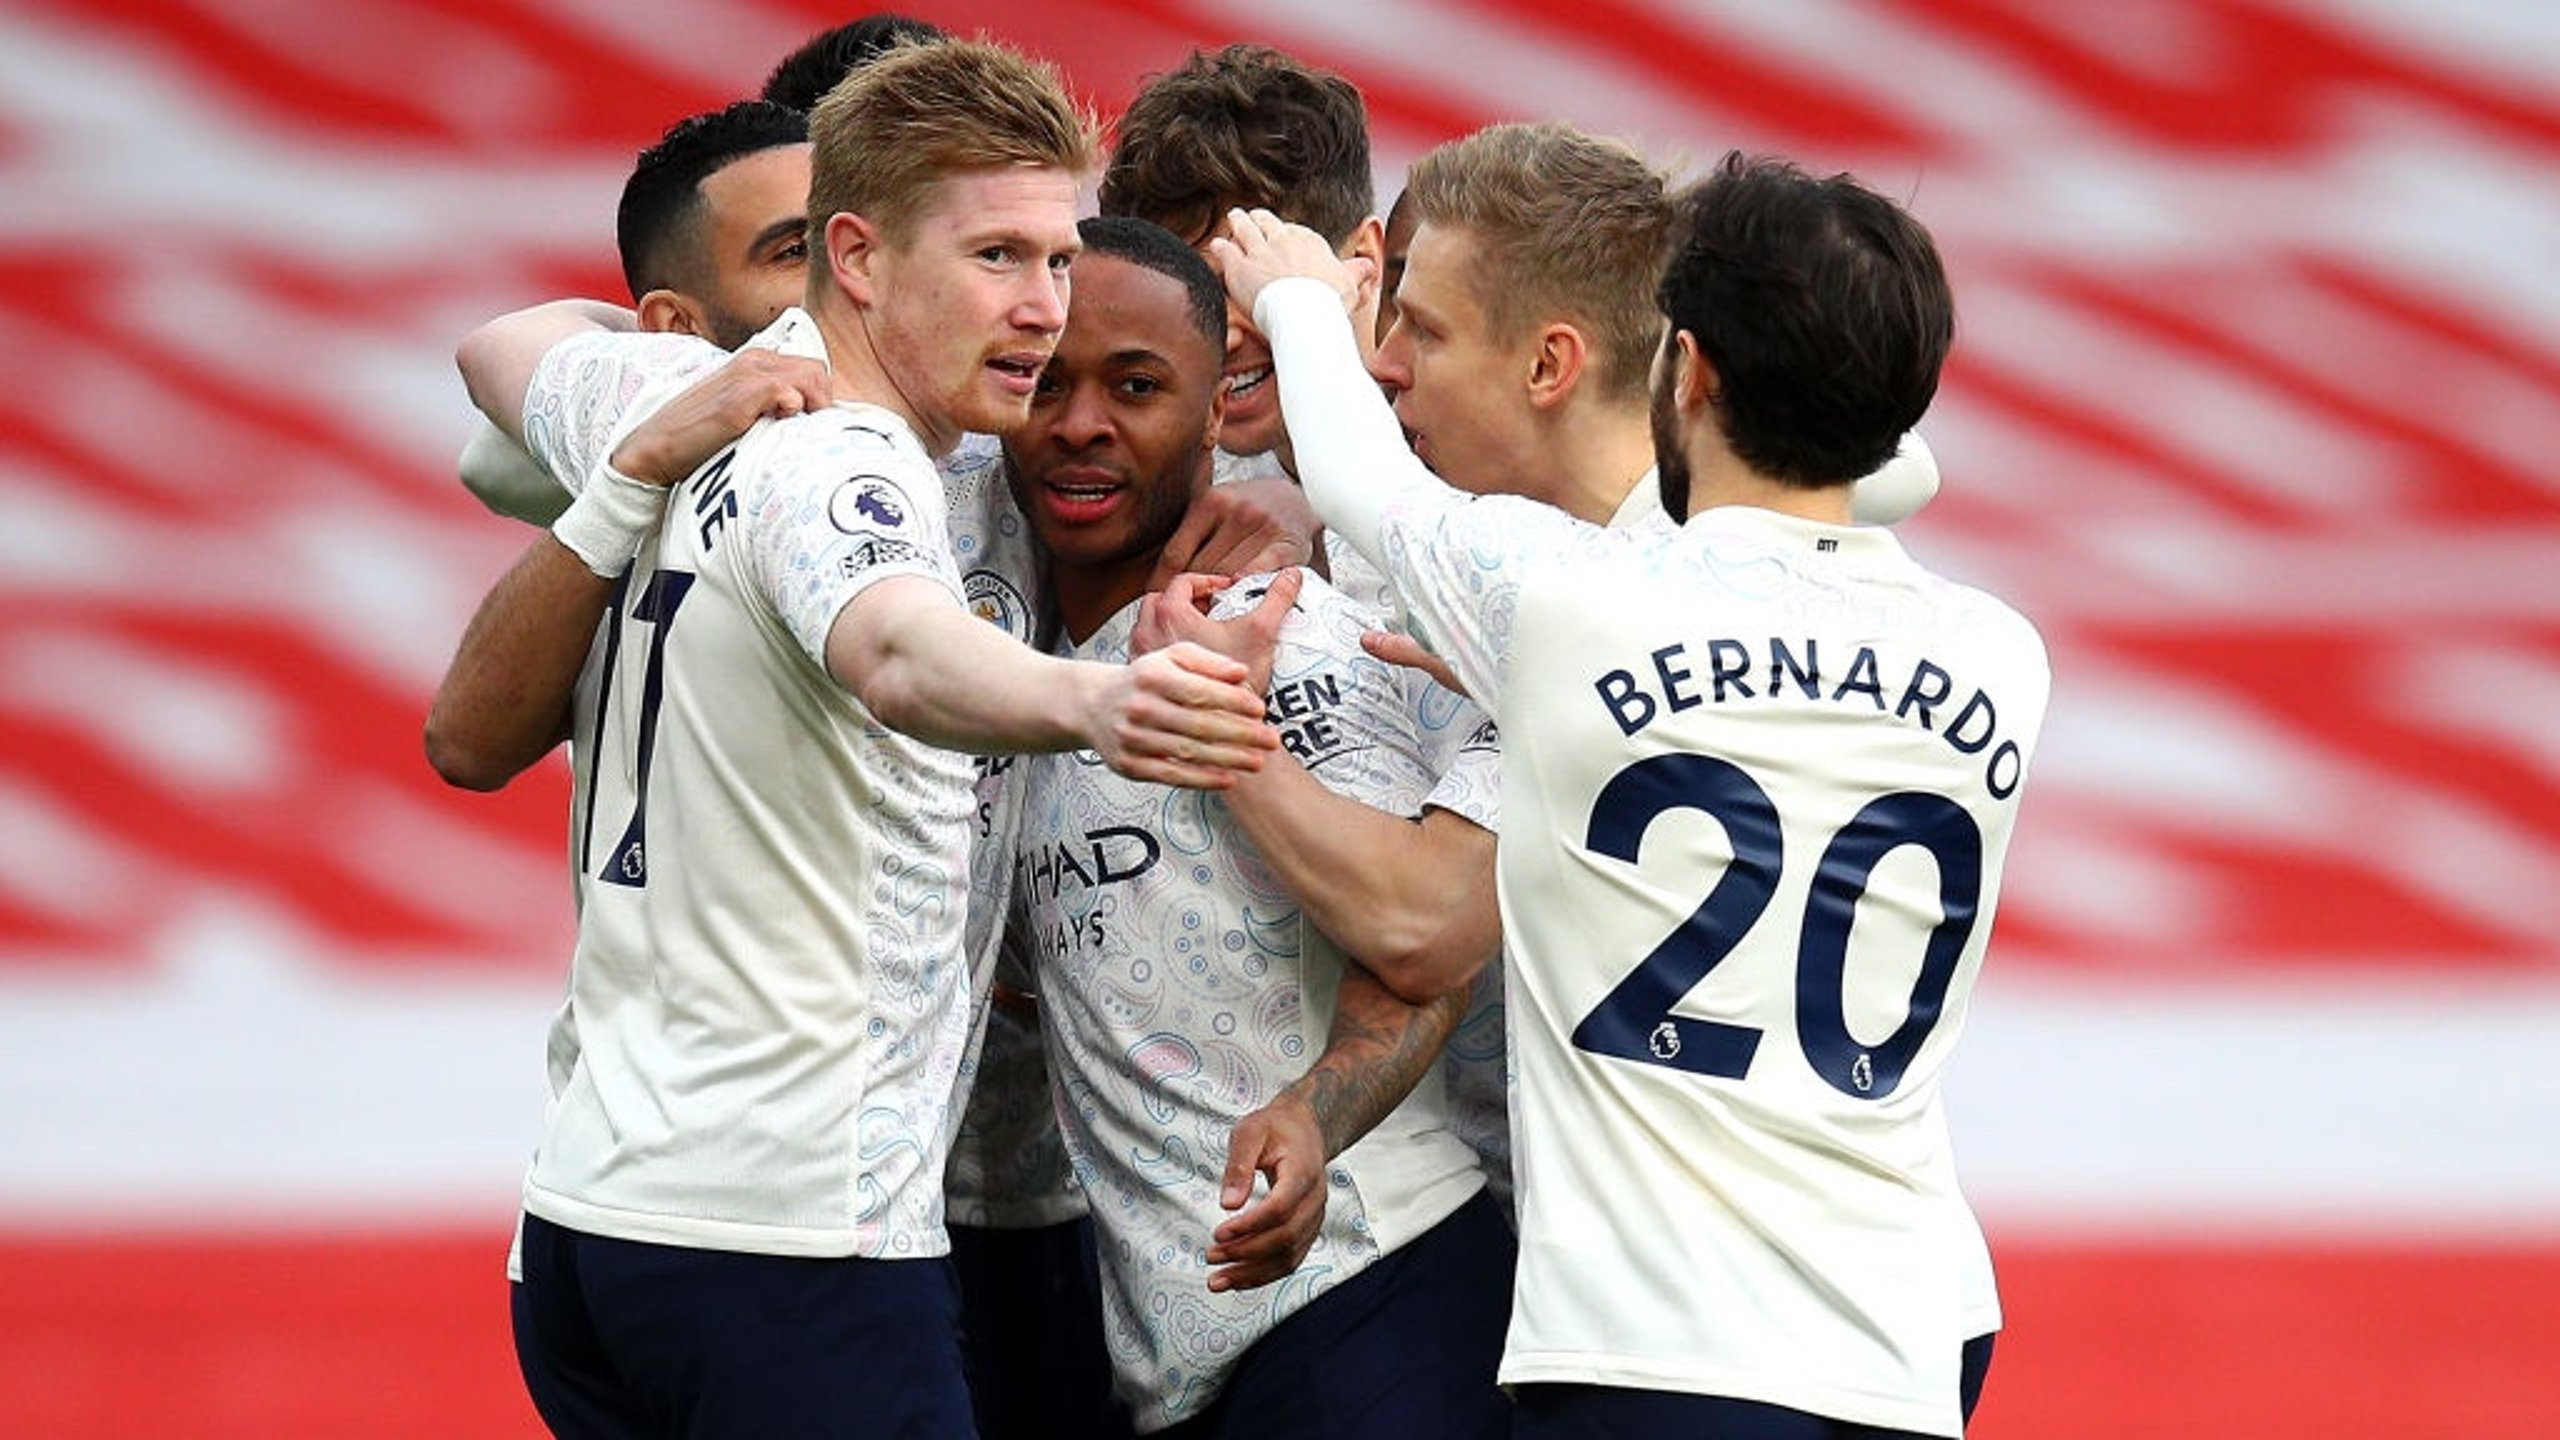 GROUP HUG: The players gather to share the love after Sterling's accurate header.